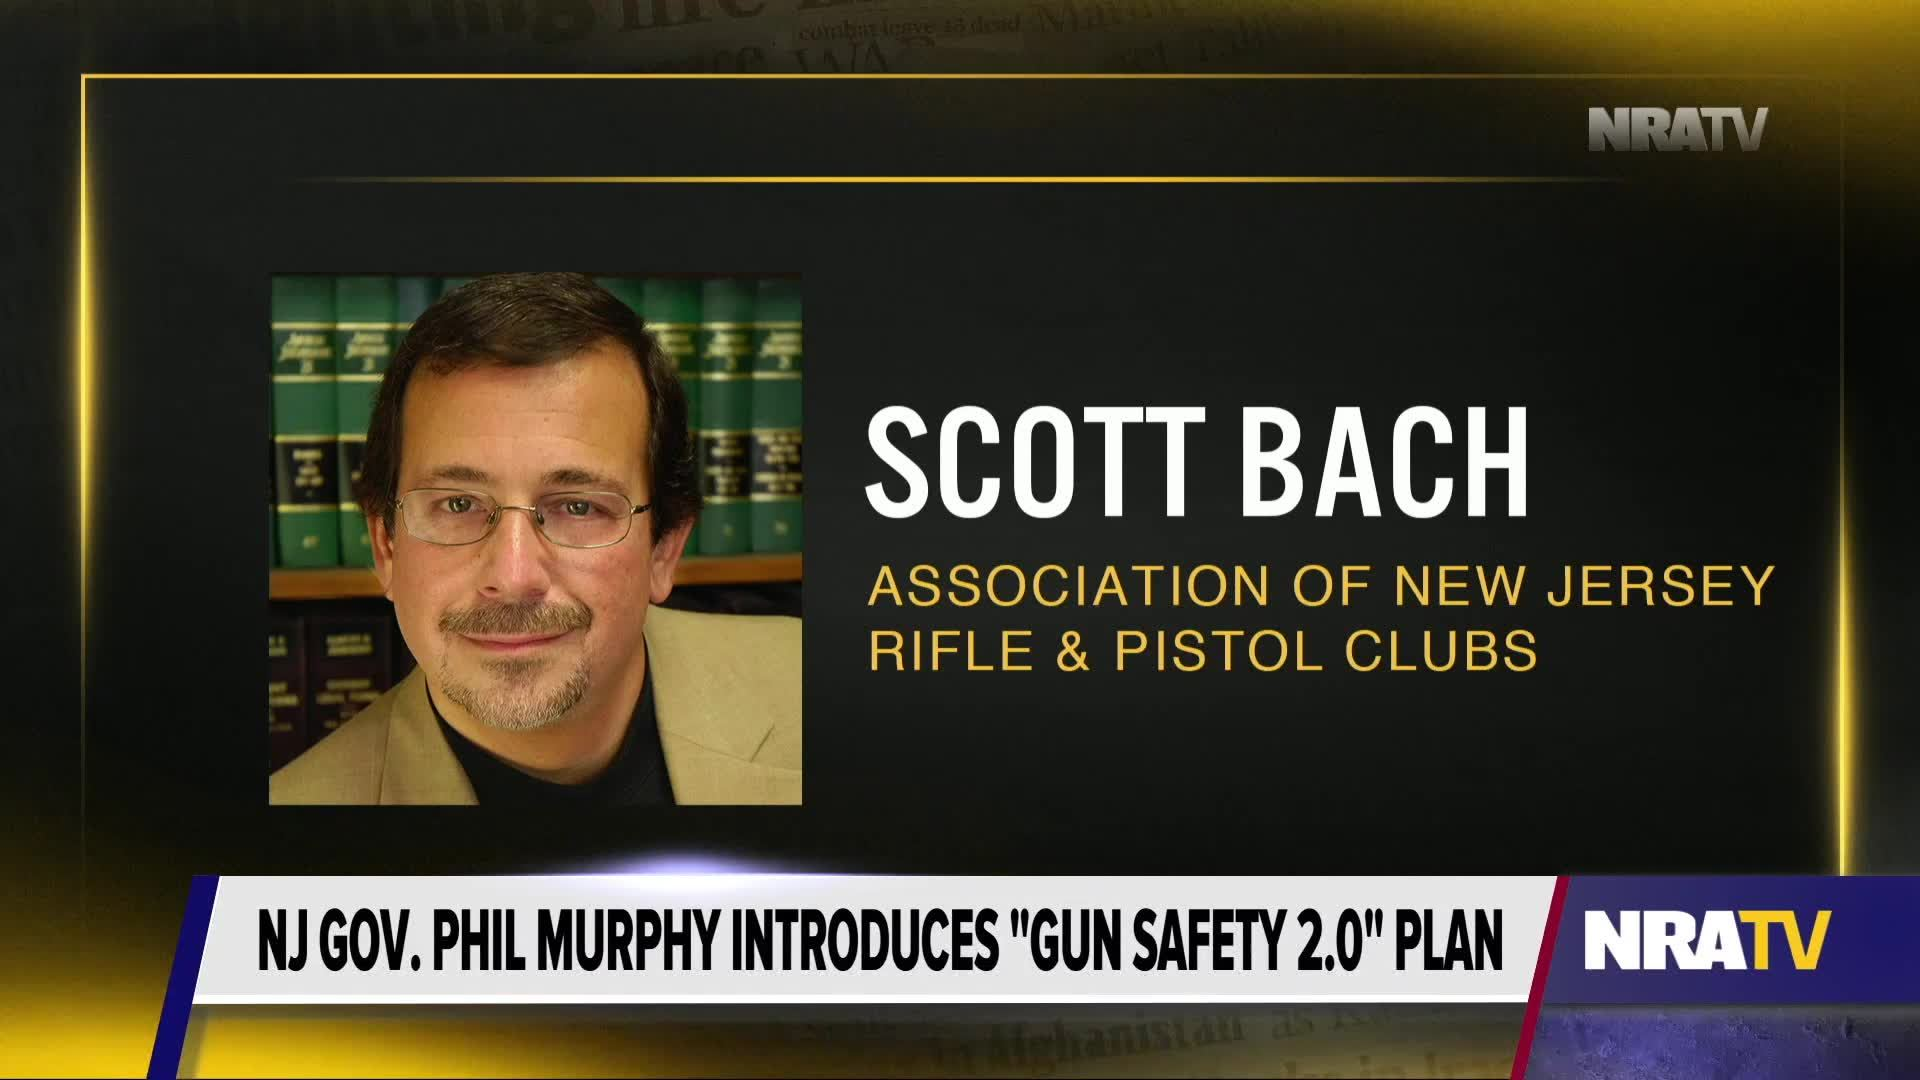 Scott Bach Round Two For Gun Control In New Jersey